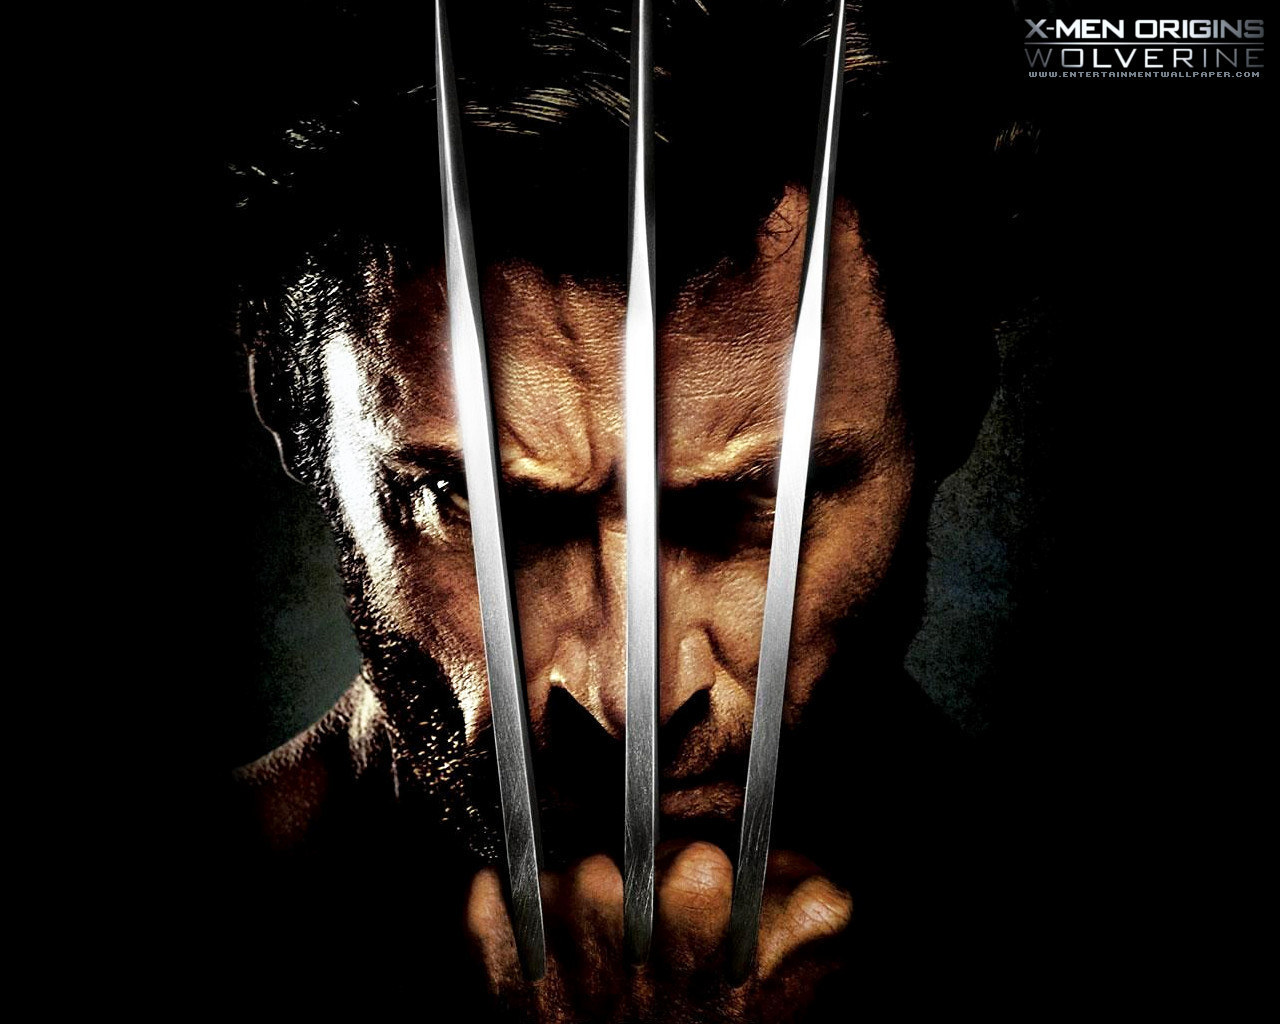 hugh jackman as wolverine images wolverine hd wallpaper